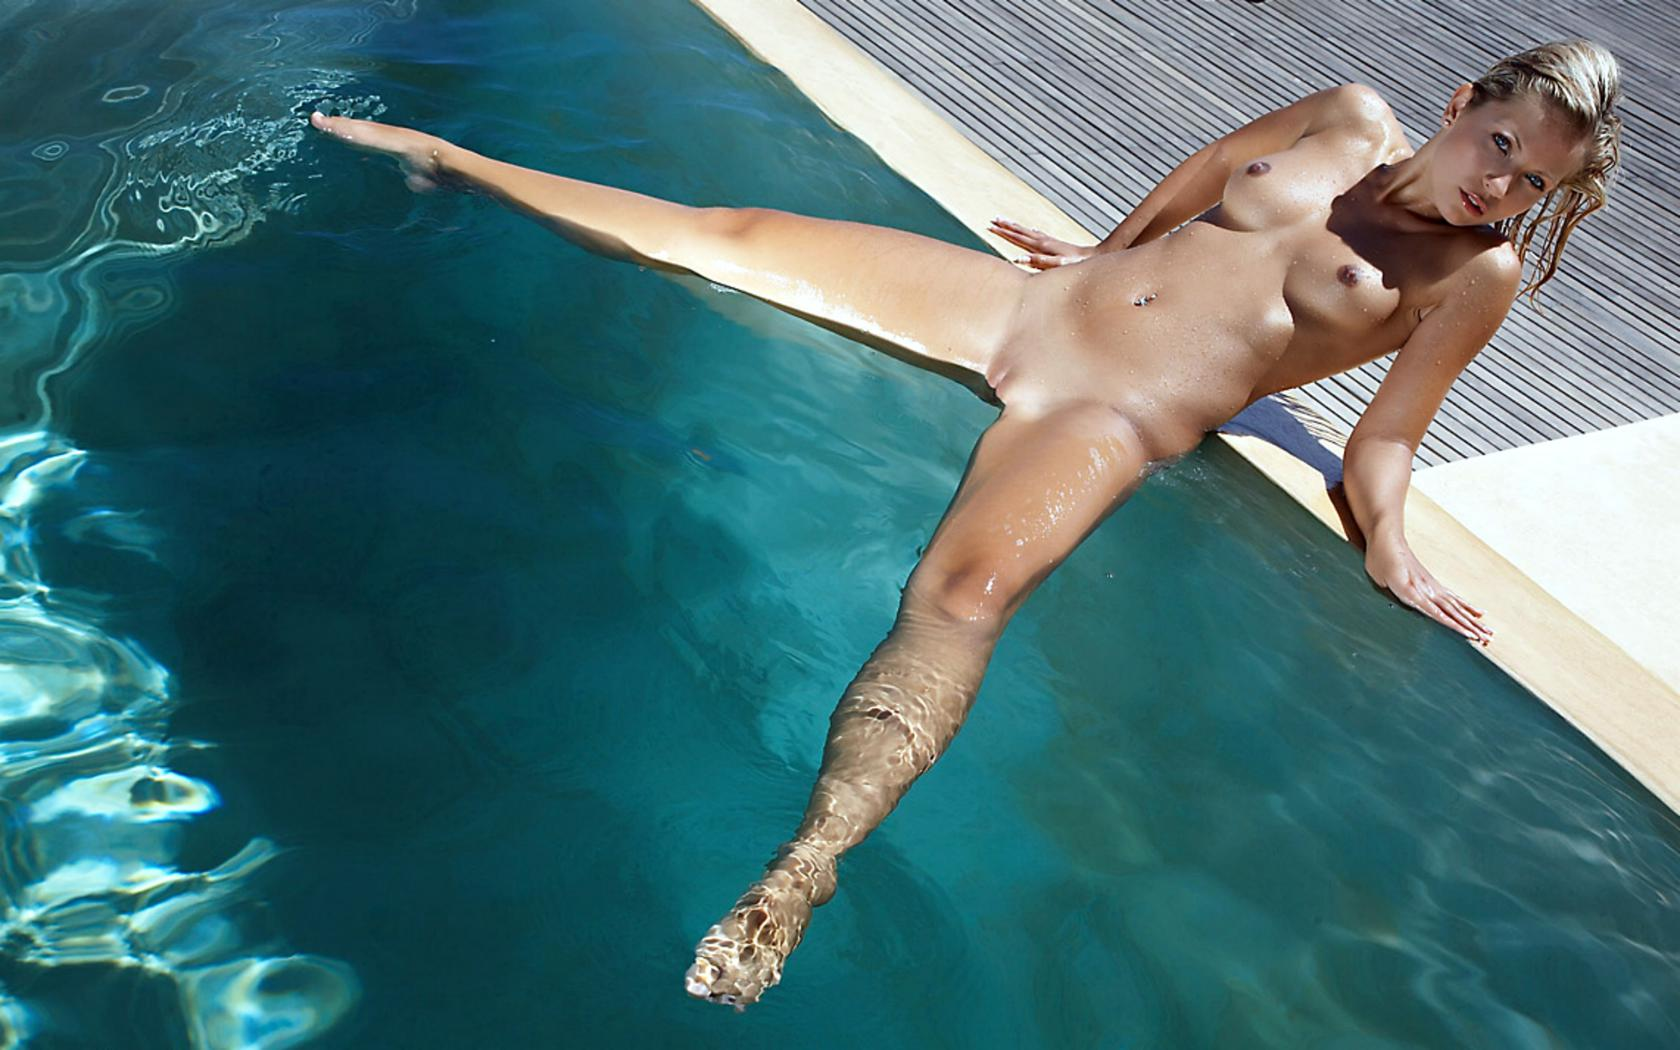 Remarkable, Nude jenni gregg pool really. All